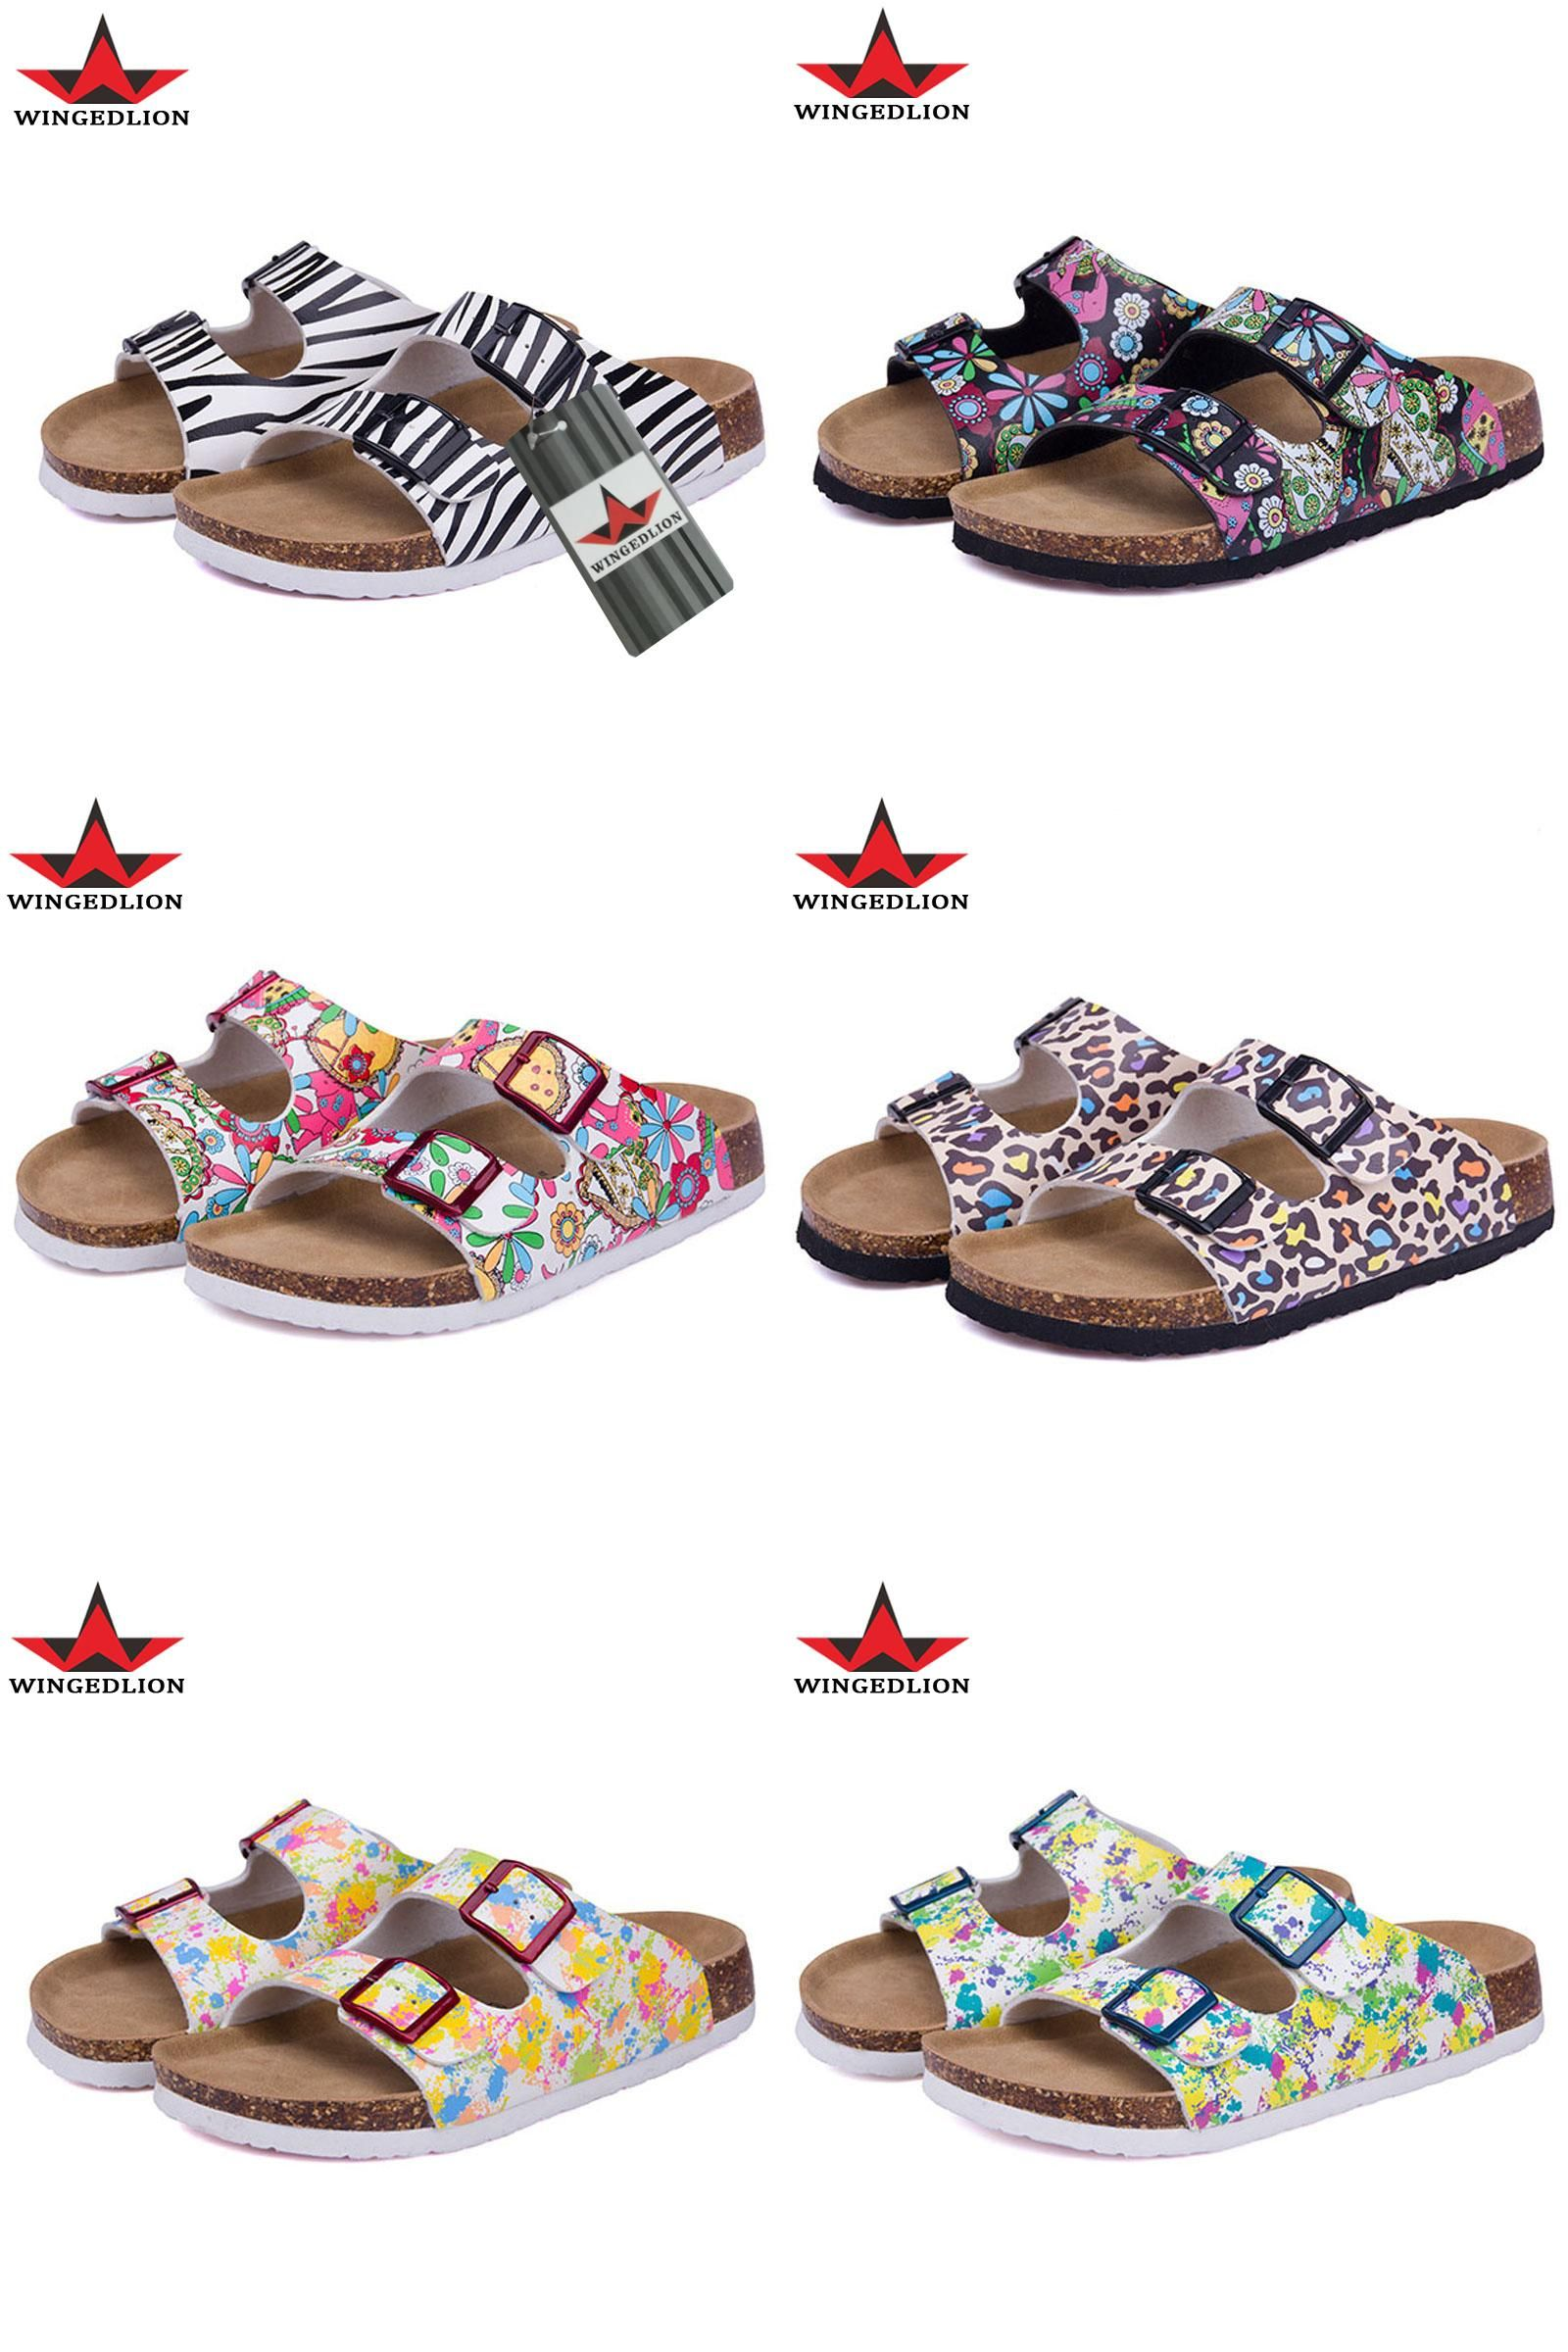 2db8dcc85bd2  Visit to Buy  Wingedlion cheap women shoes china but the quality is good  and